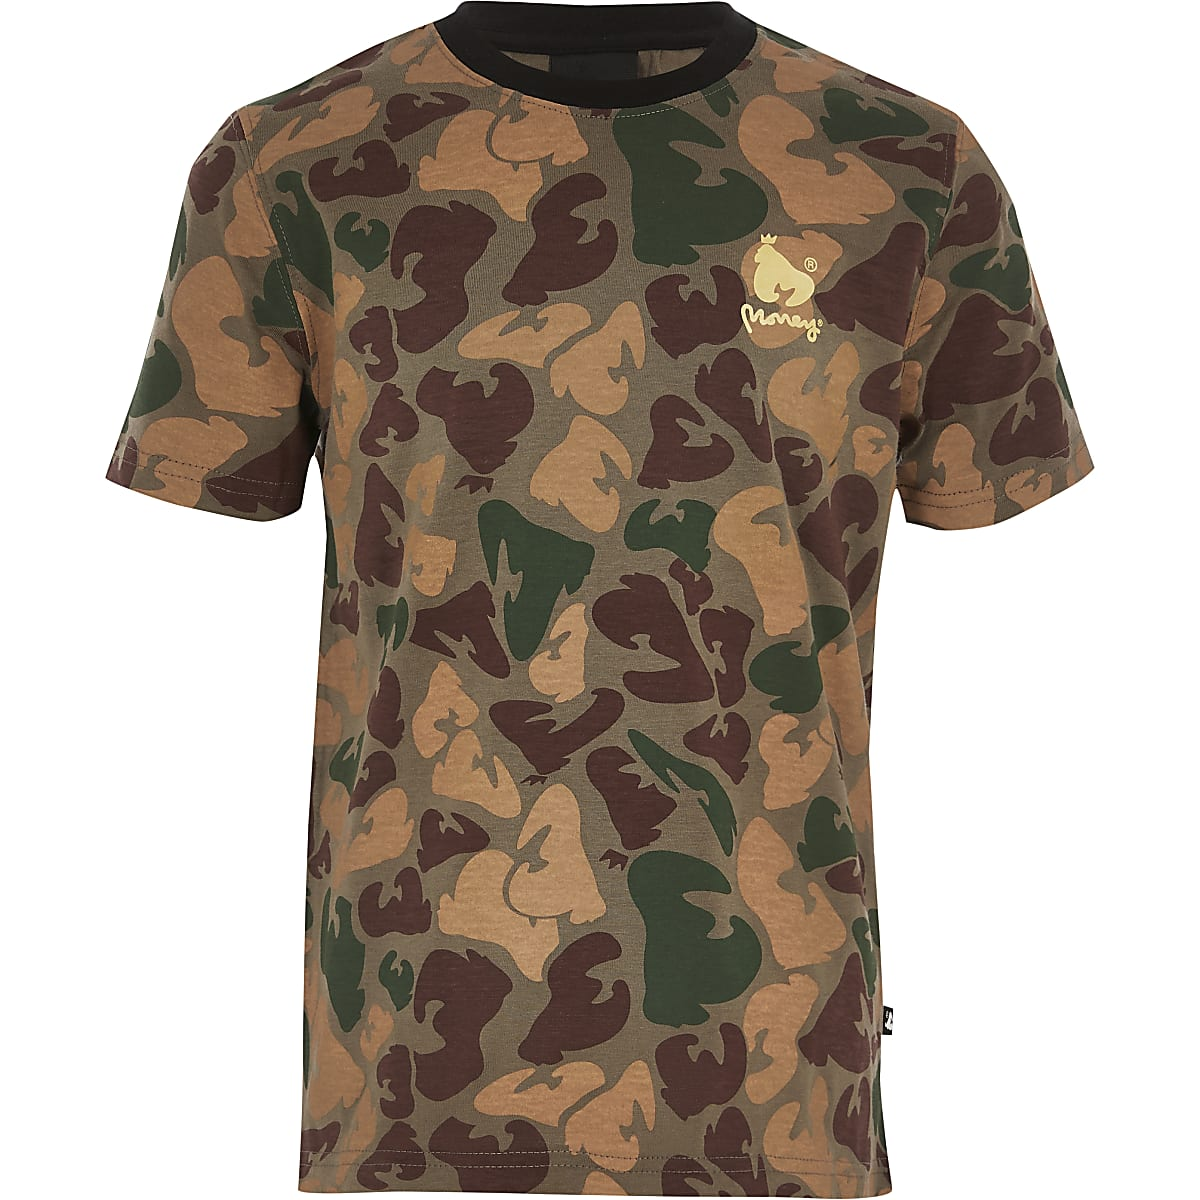 Boys Money Clothing green camo T-shirt